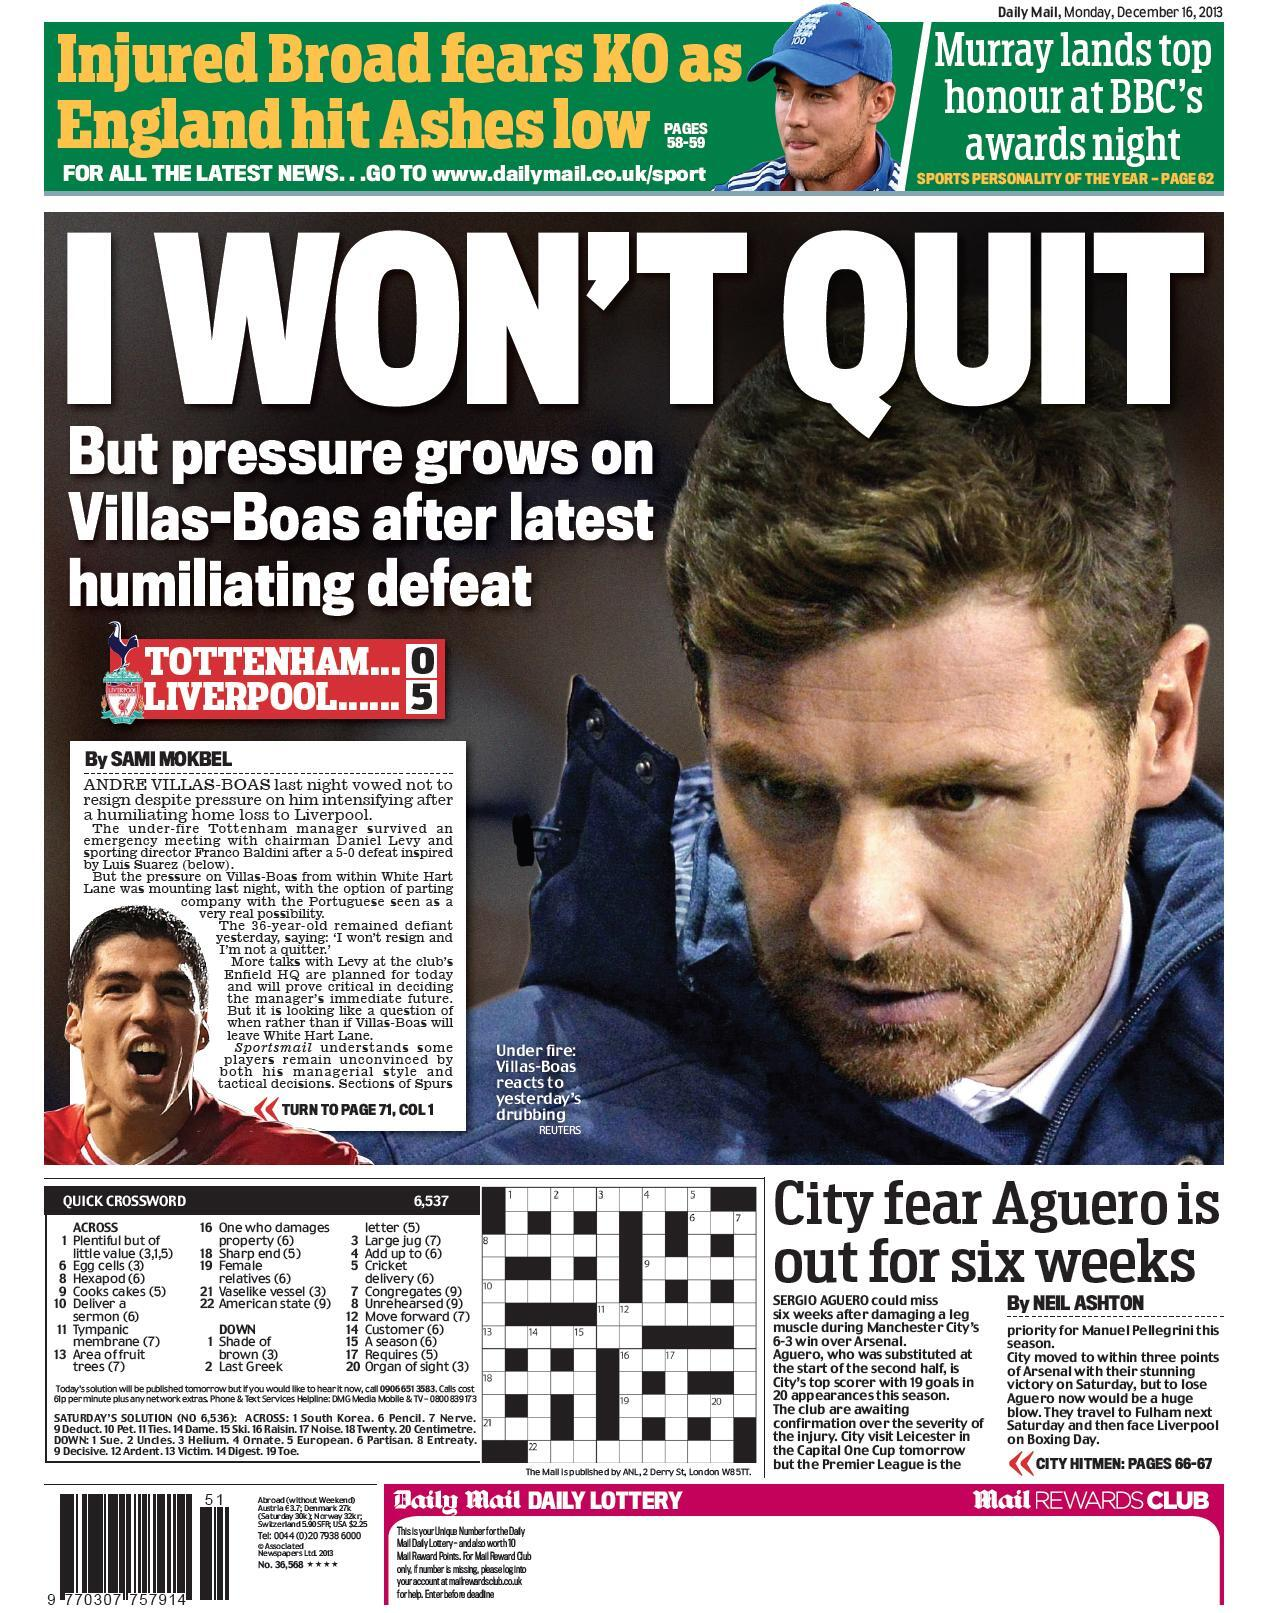 Manchester Citys Sergio Aguero to miss six weeks with a calf injury [Mail & Star]